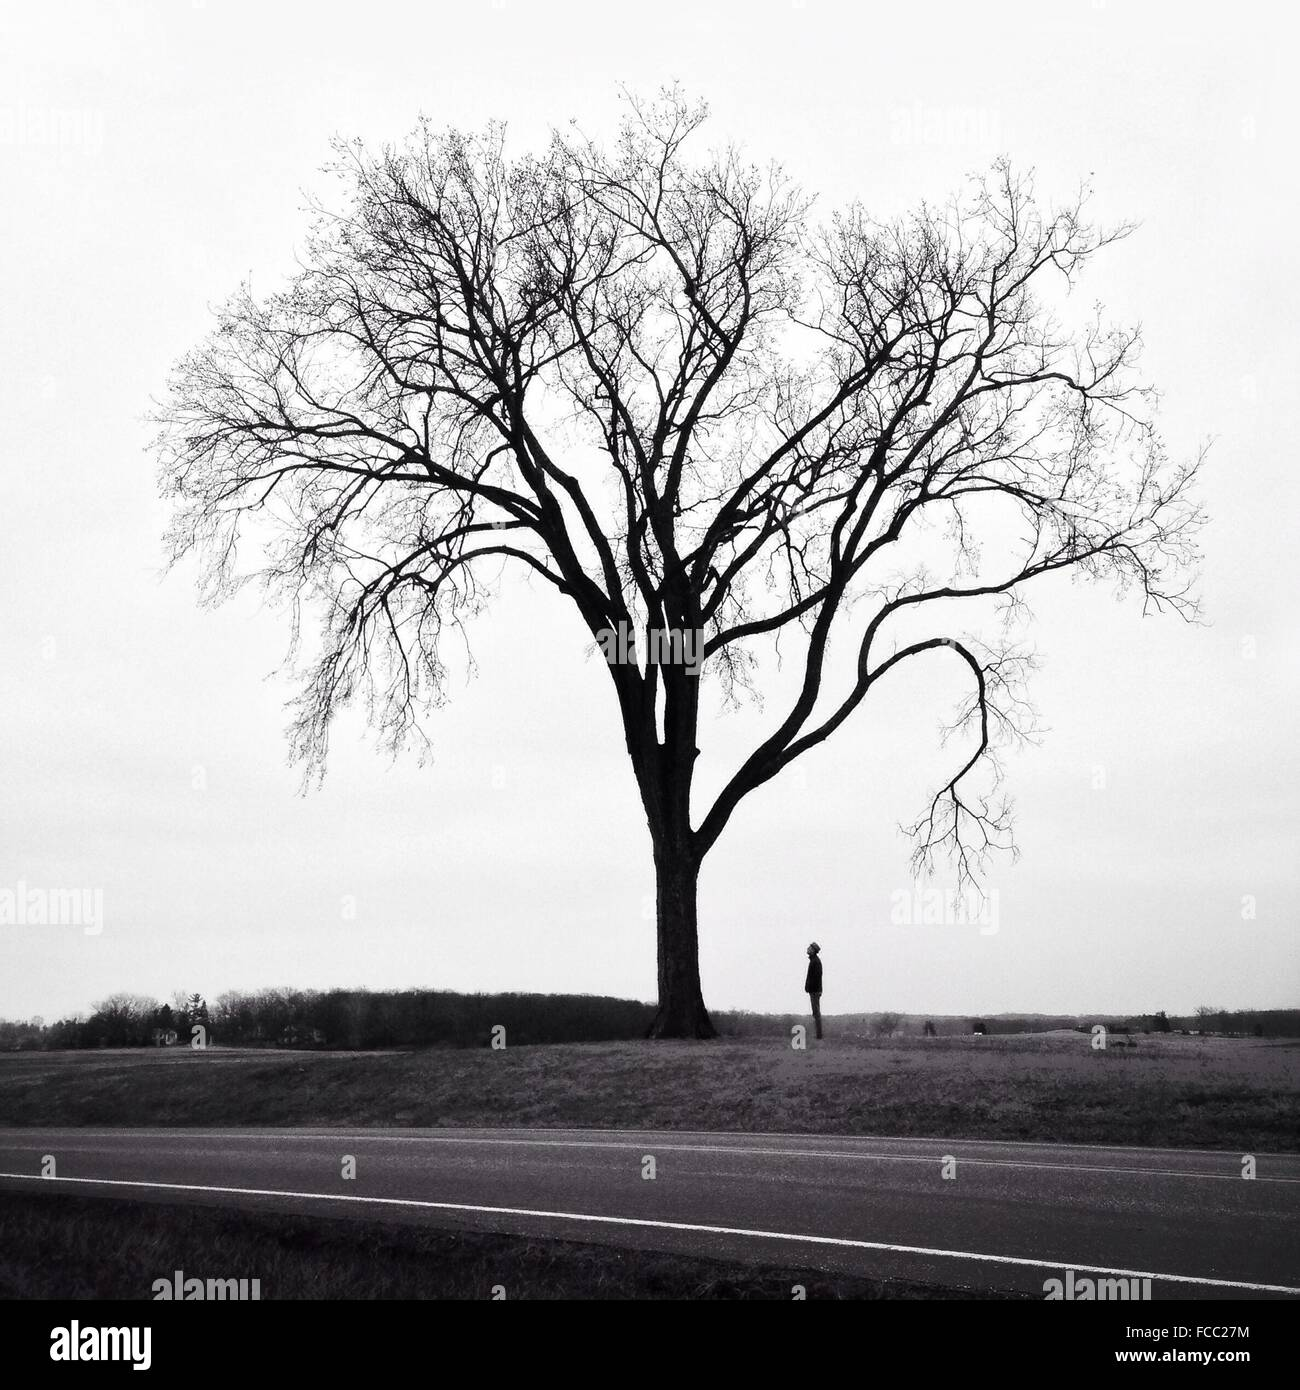 Man Standing Next To Tree - Stock Image